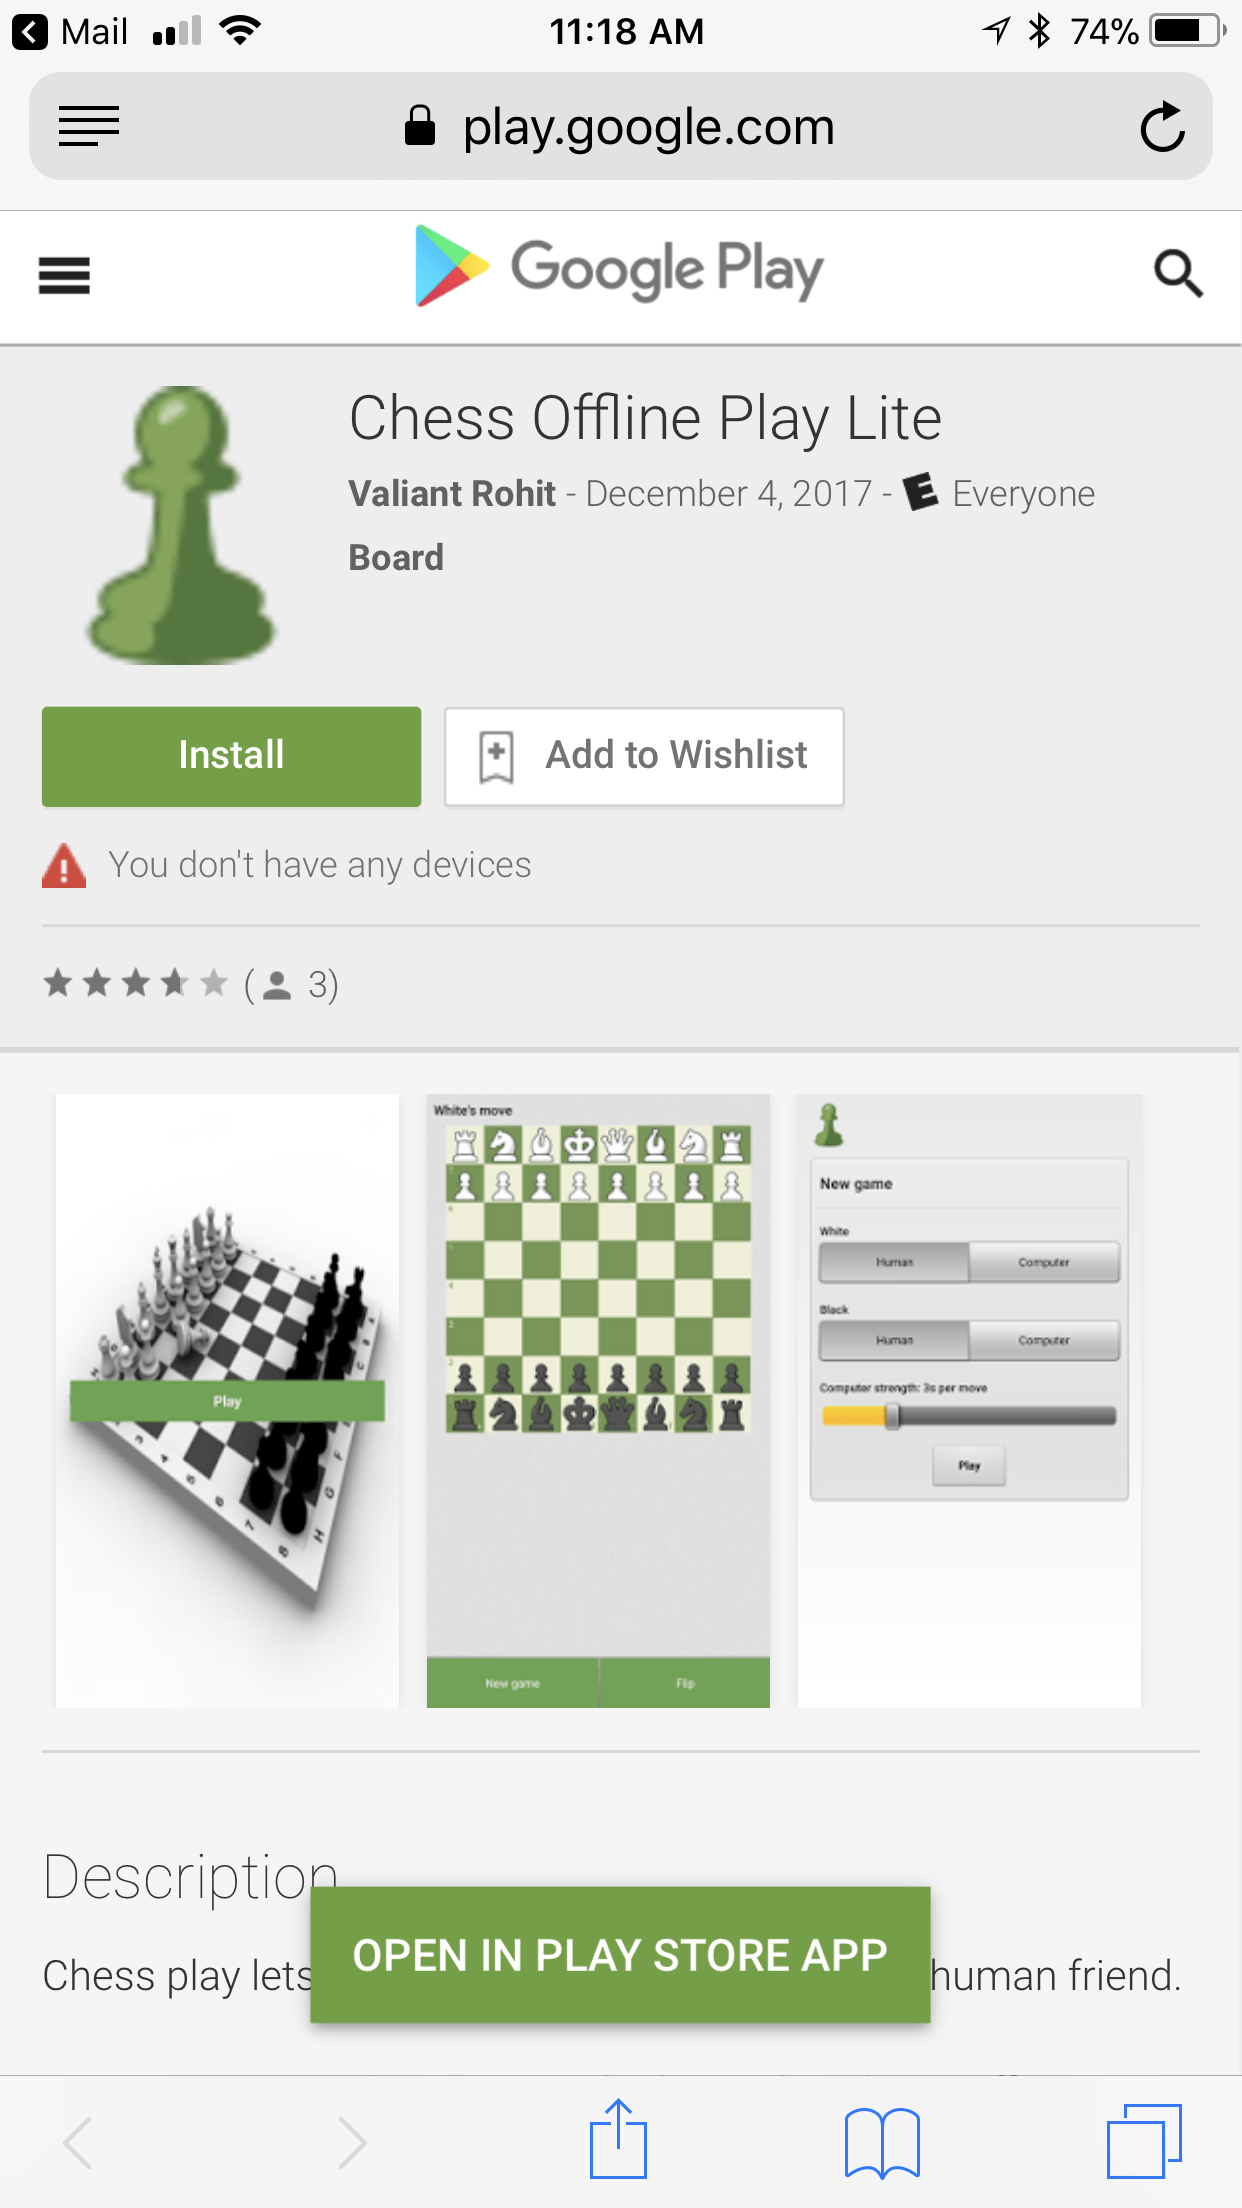 Someone made an app and it looks like they used the Chess